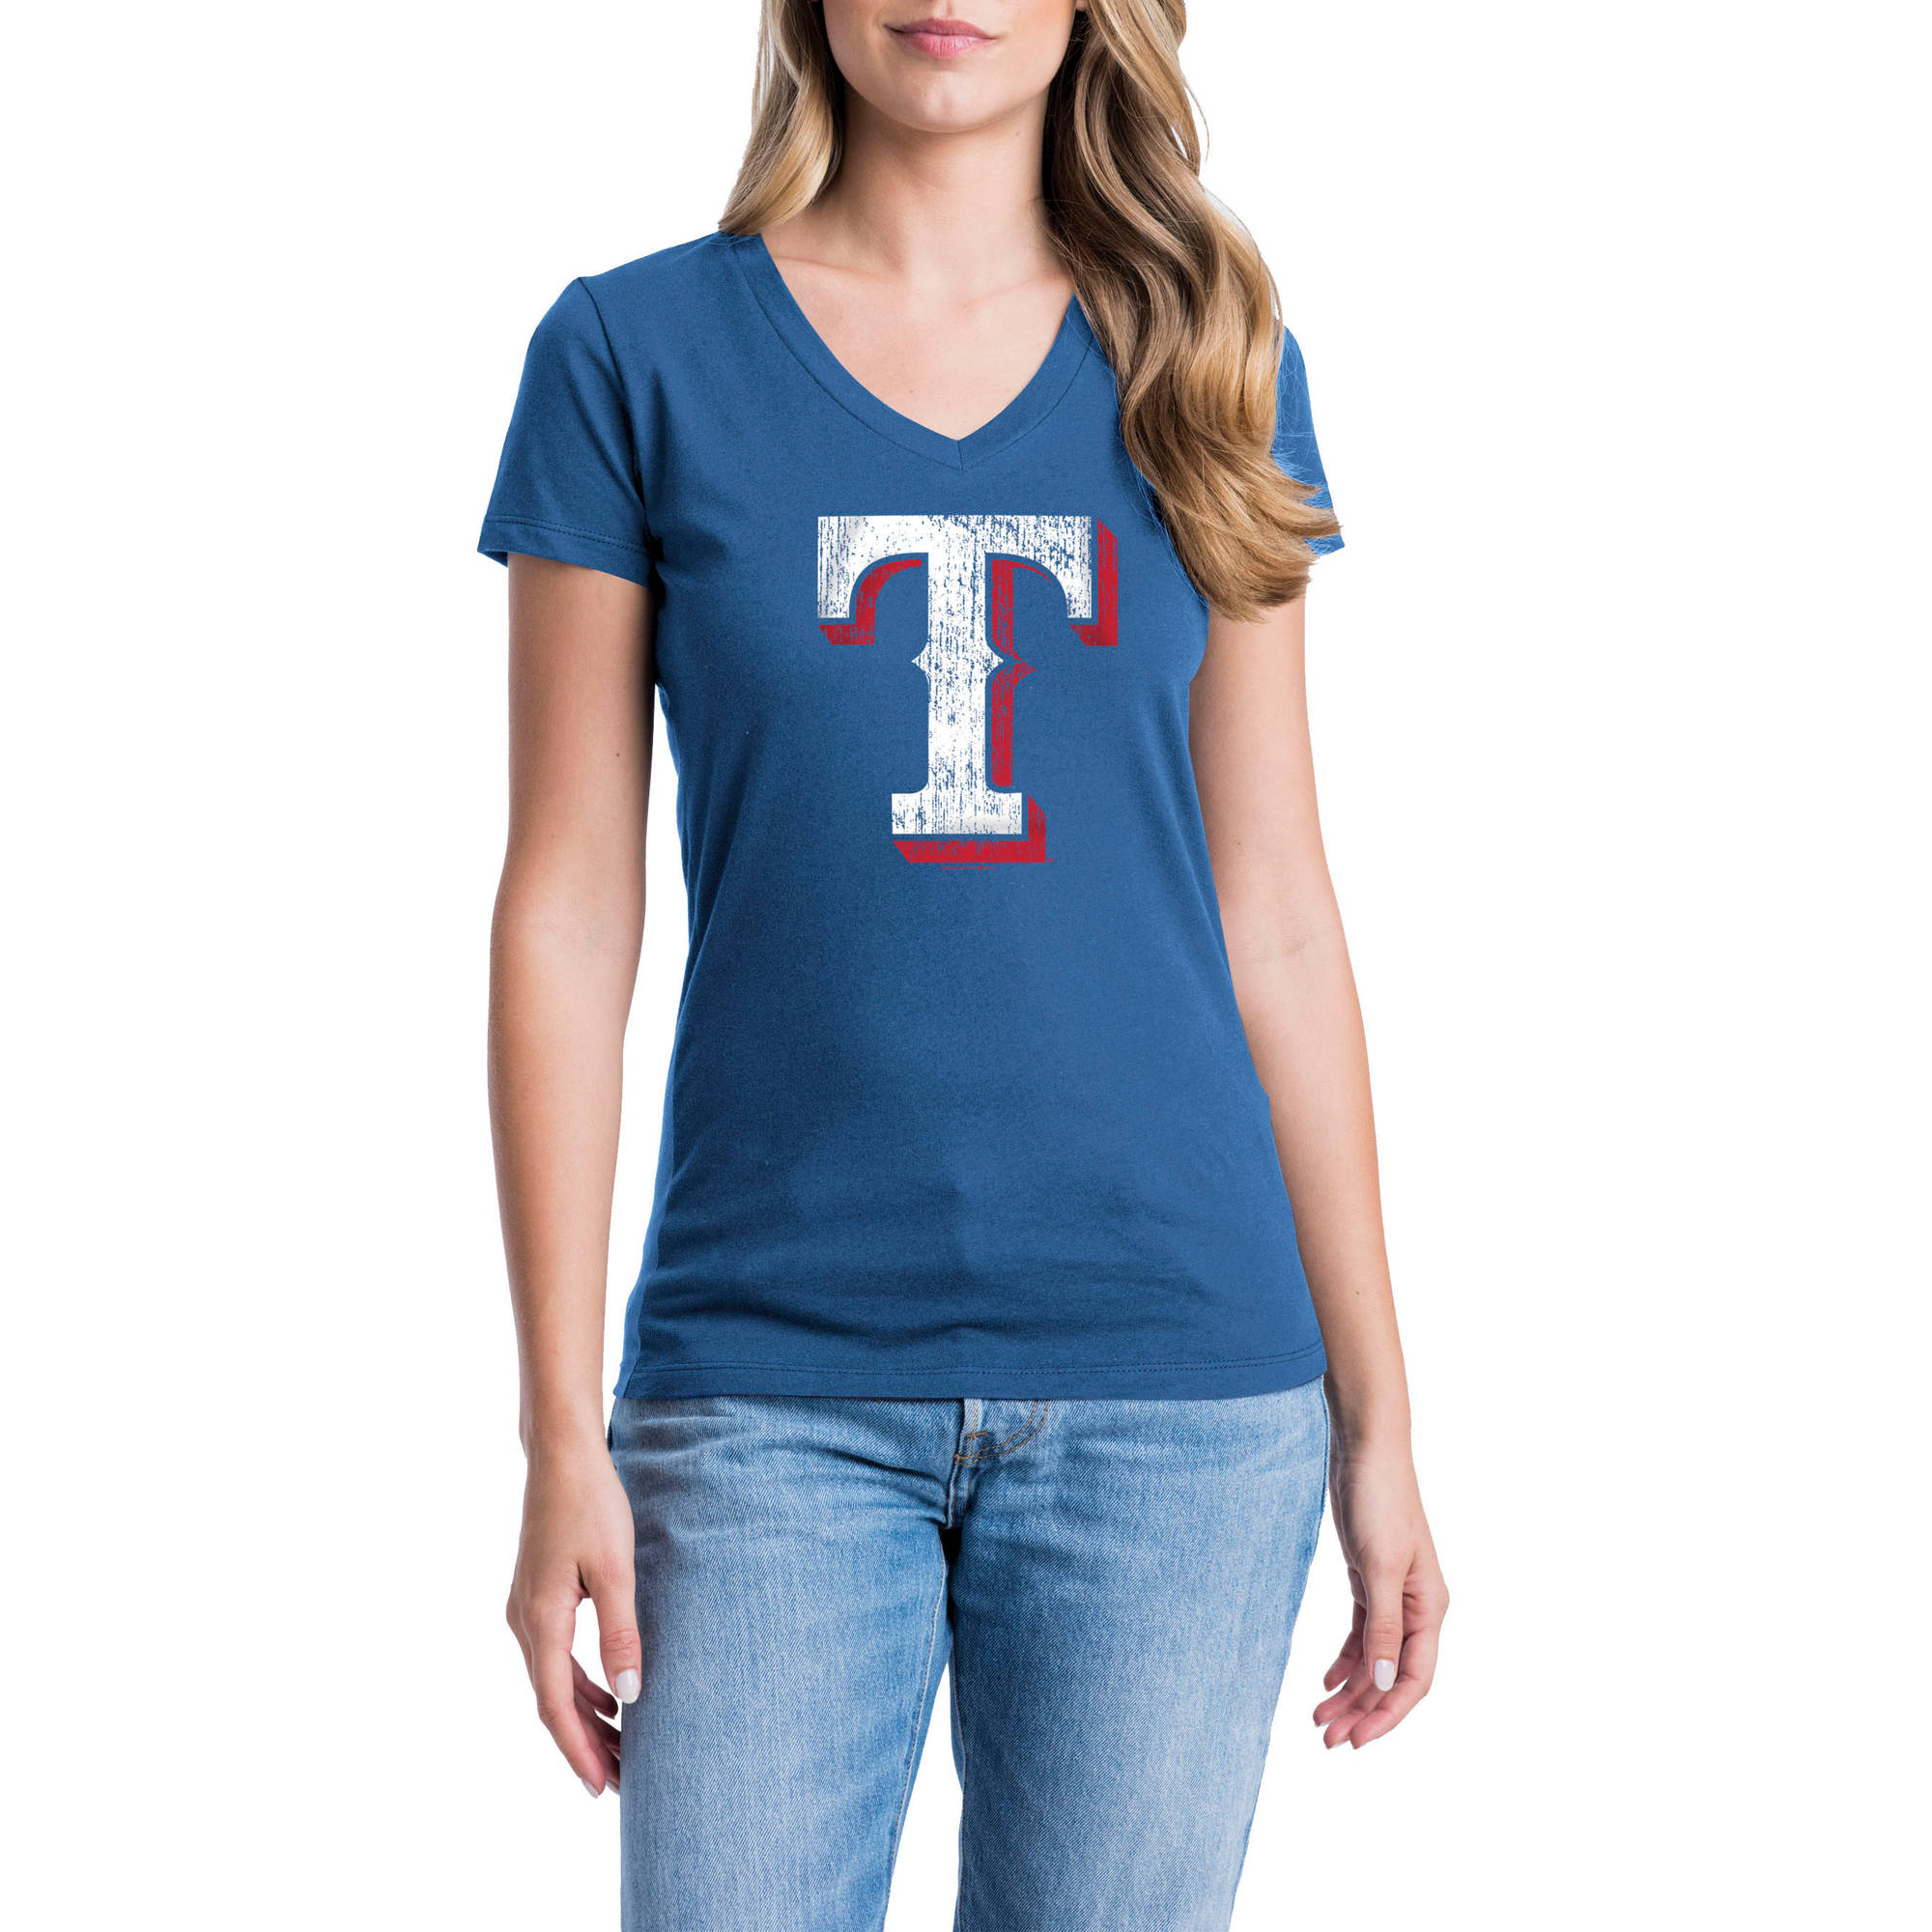 Texas Rangers Womens Short Sleeve Graphic Tee